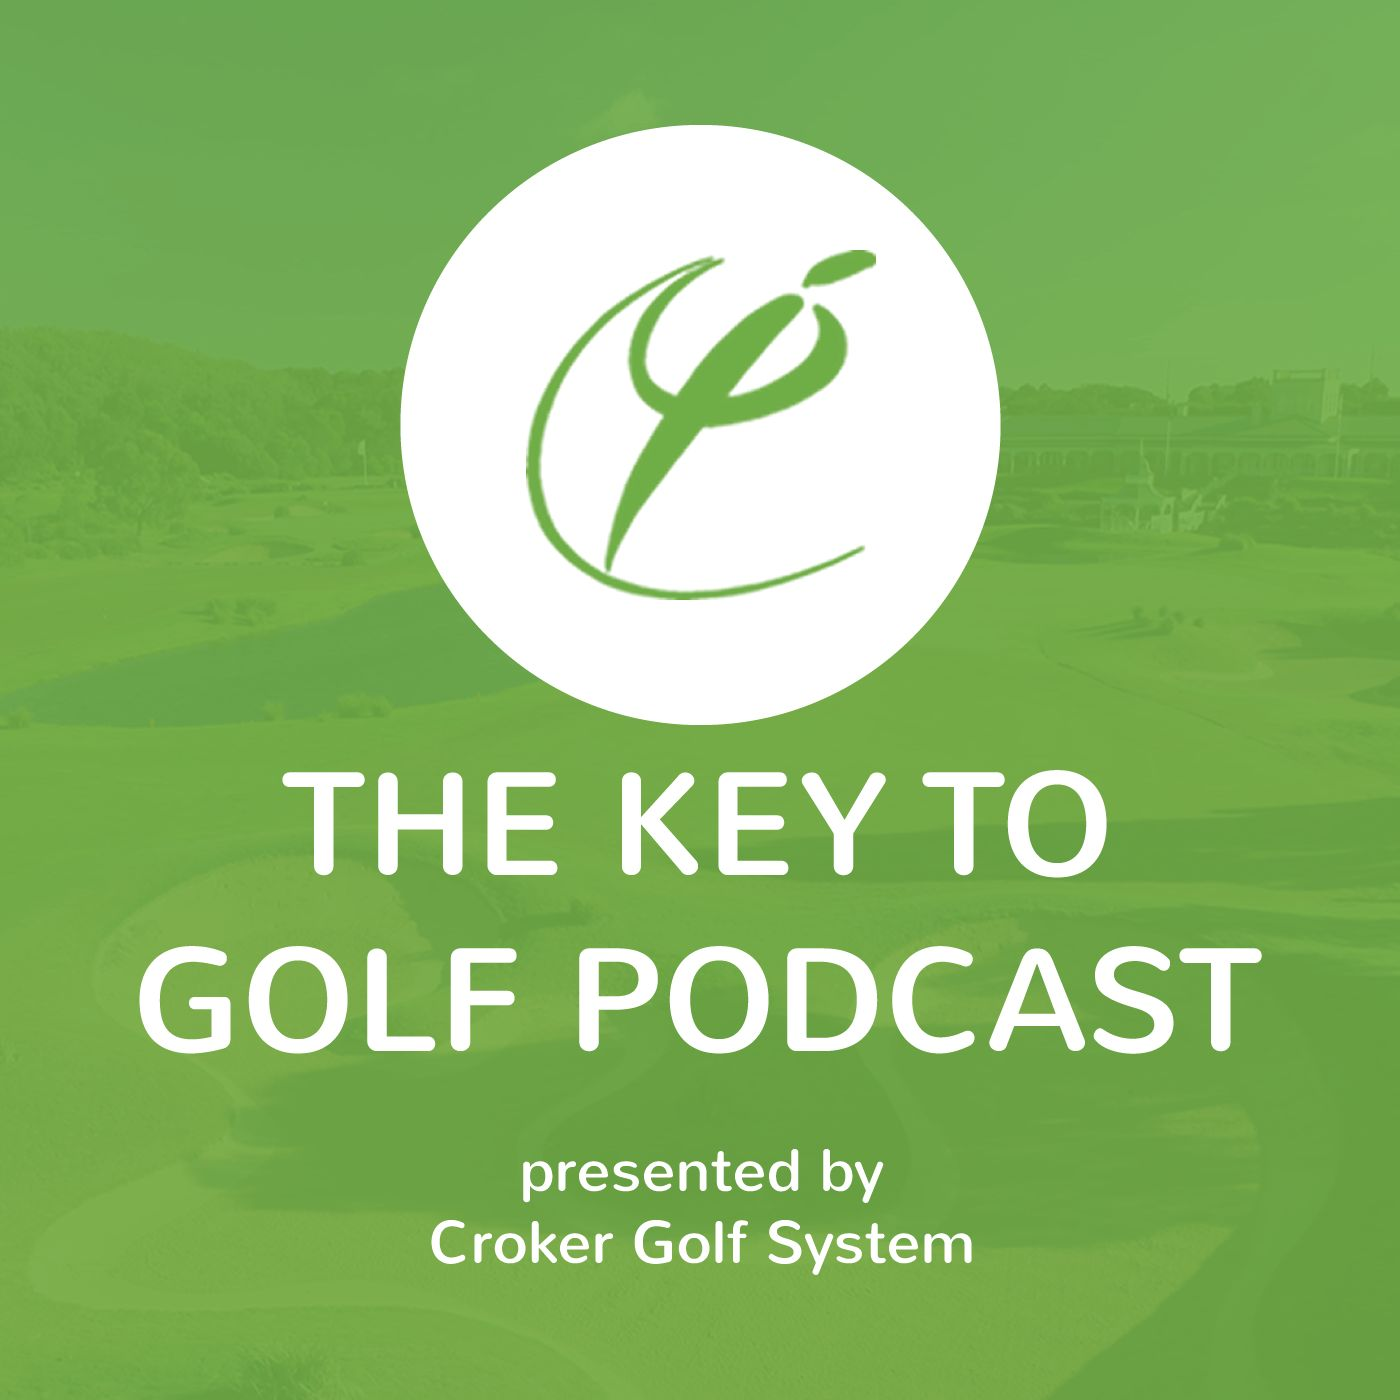 The Key To Golf Podcast presented by Croker Golf System